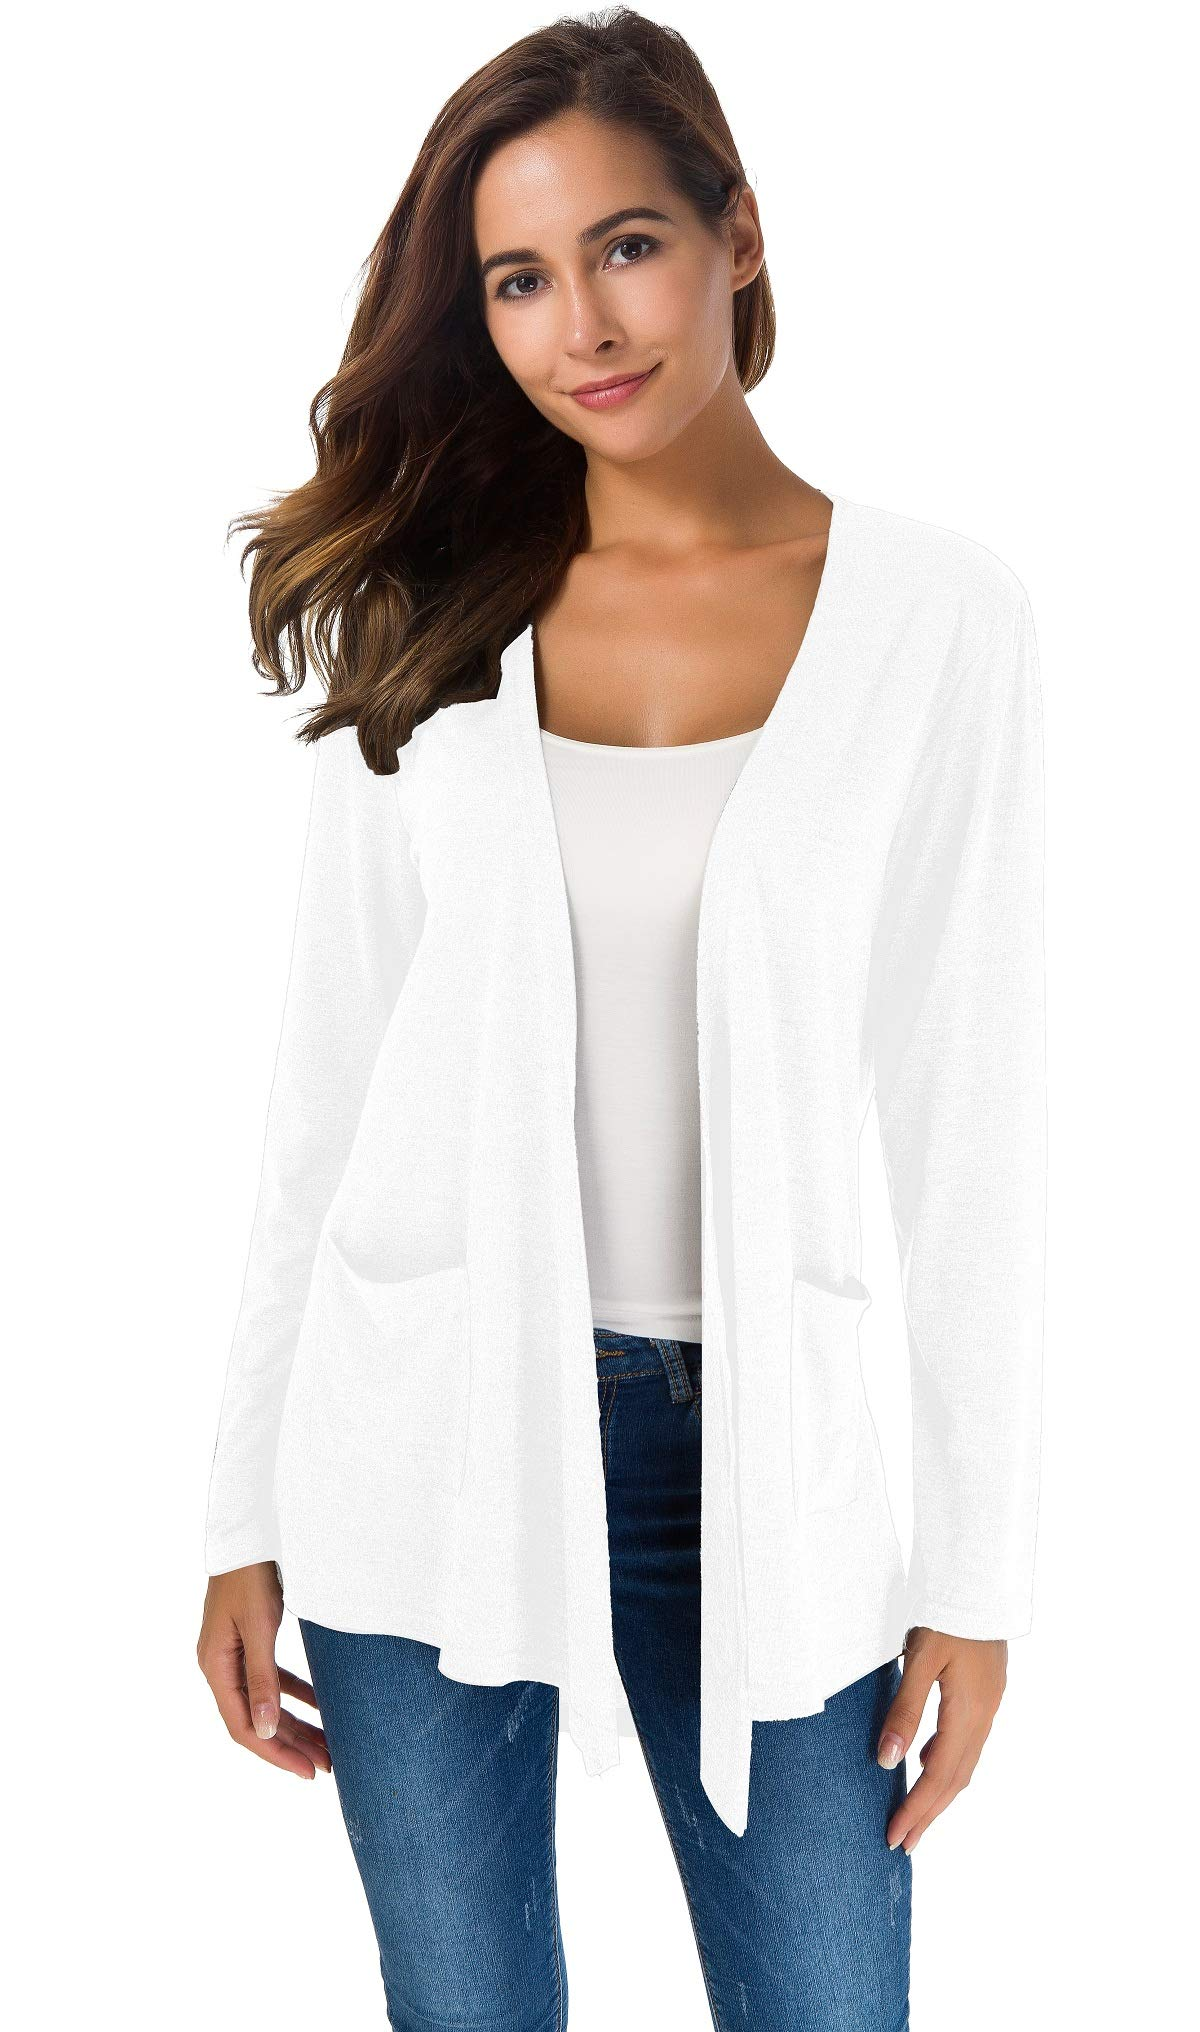 Women's Loose Casual Long Sleeved Open Front Breathable Cardigans with Pocket (White1, S)